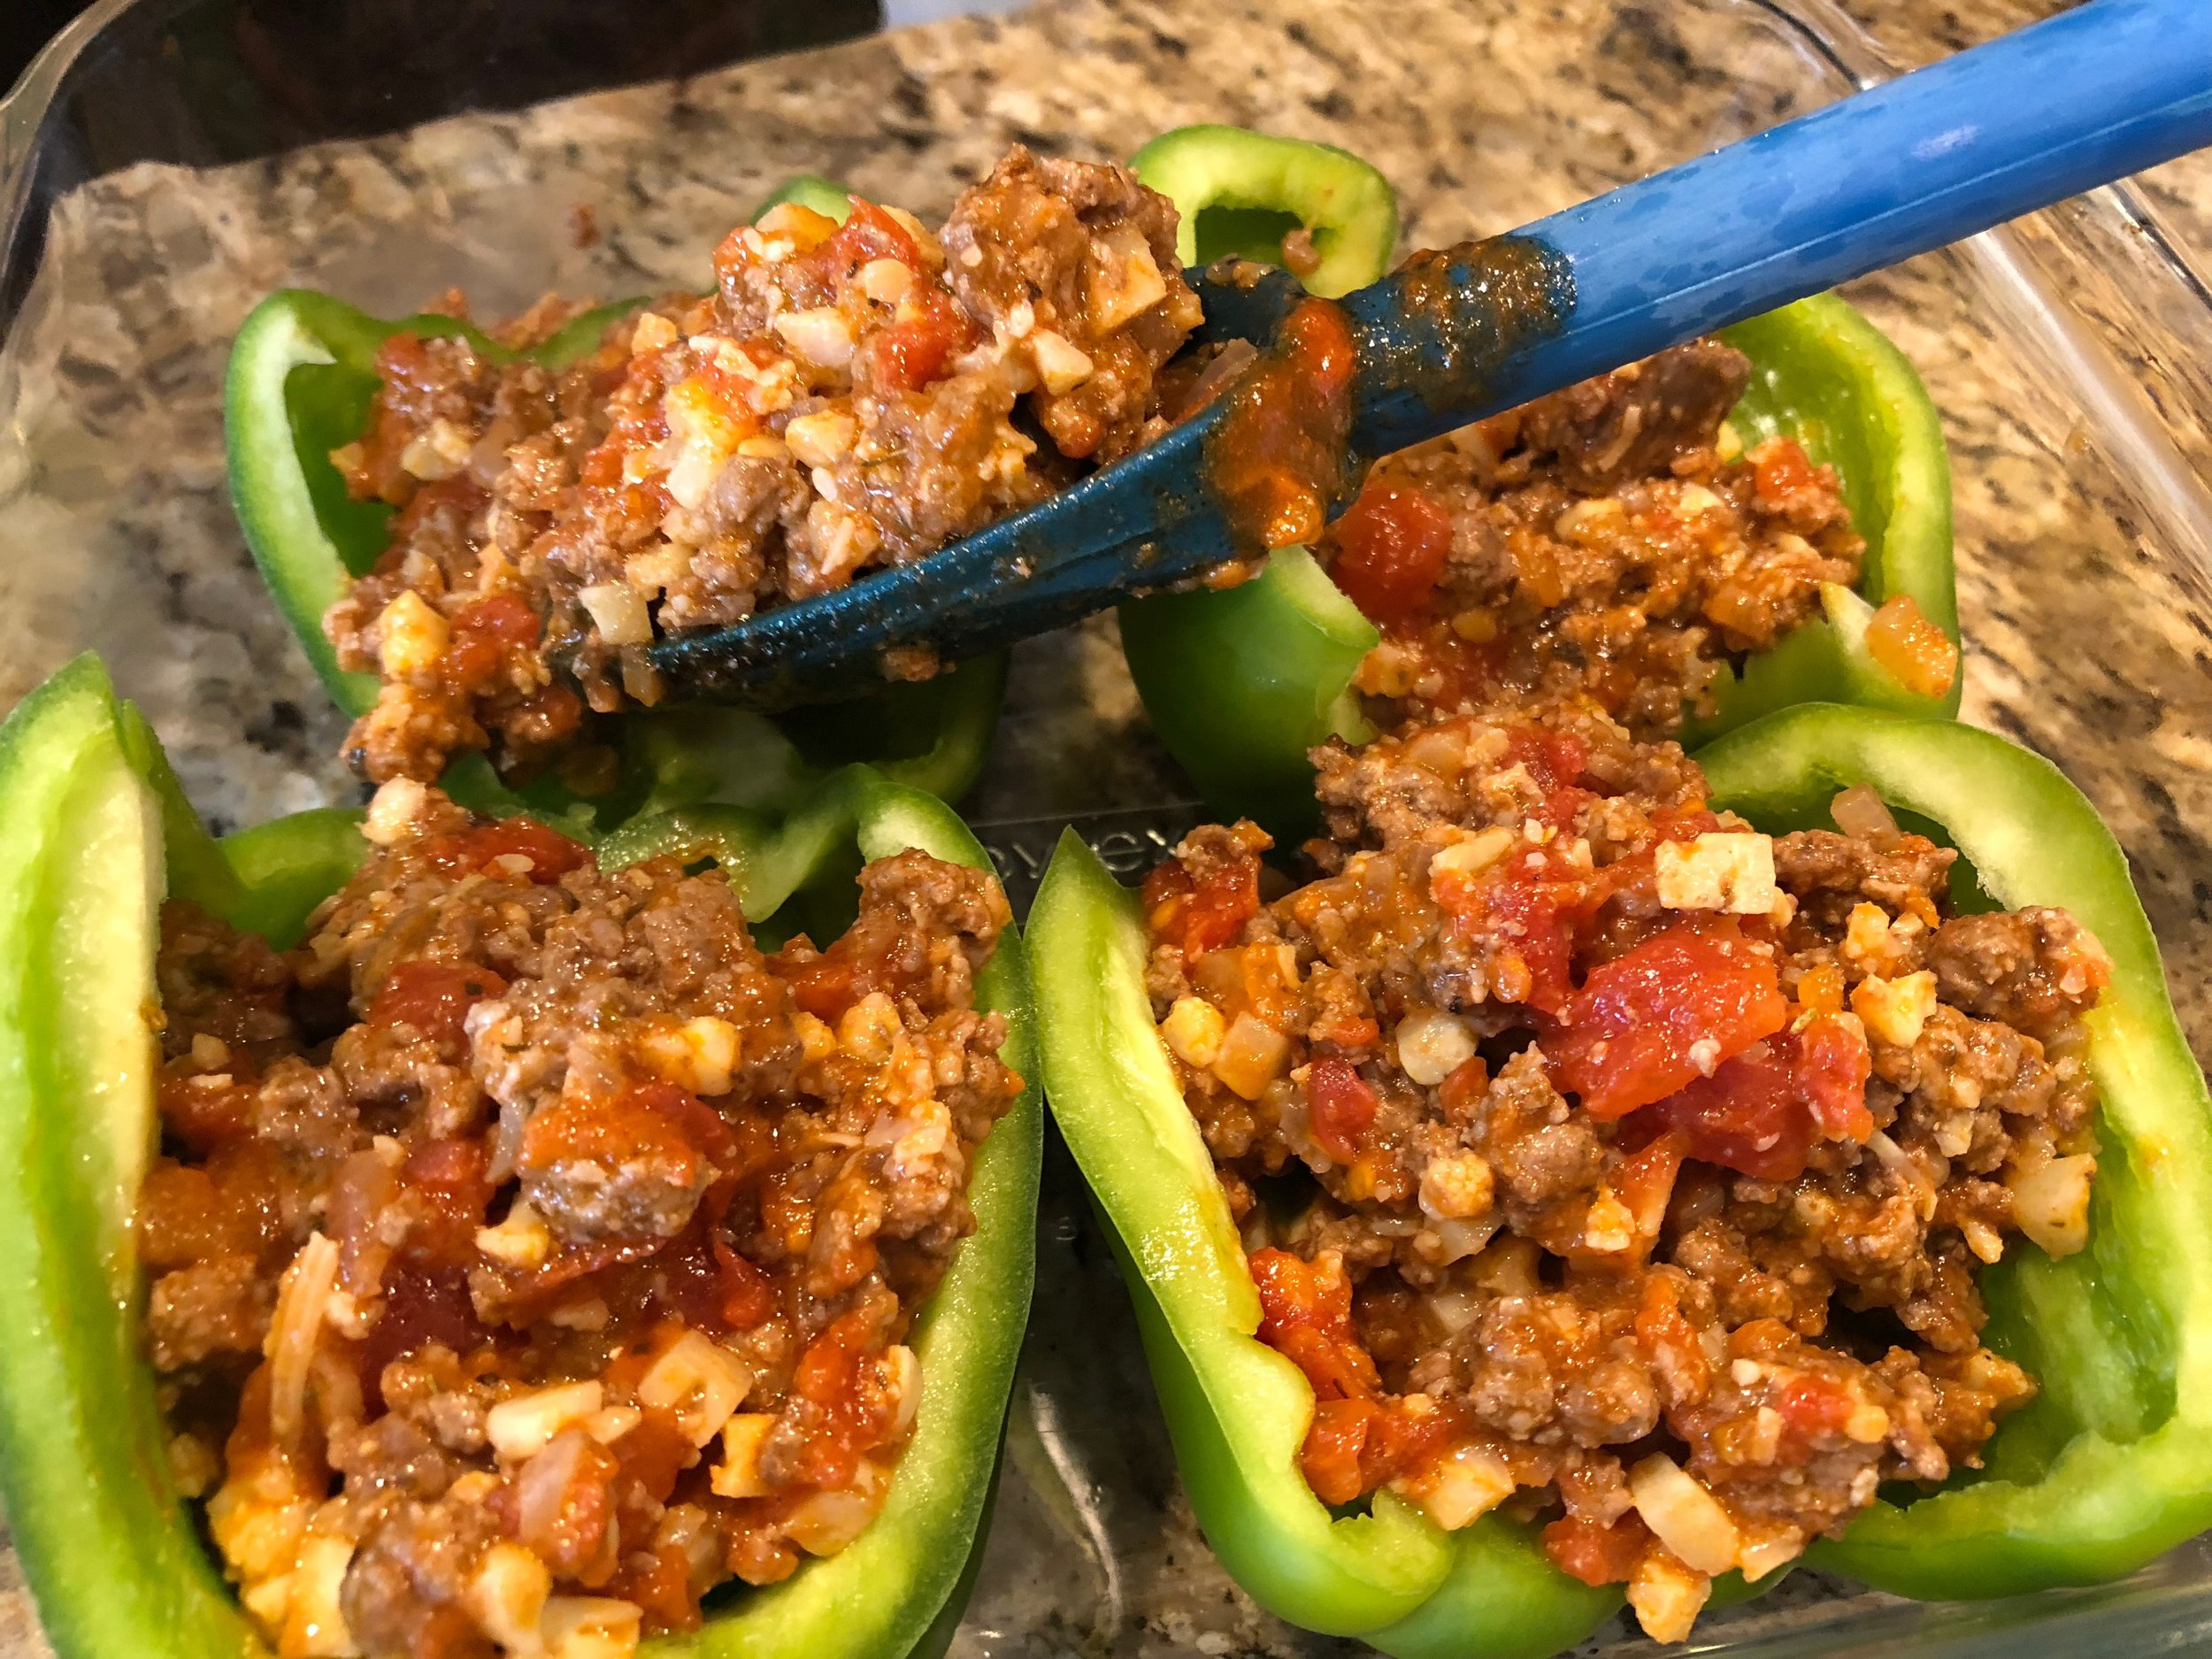 Ketogenic stuffed peppers for Keto diet weightloss